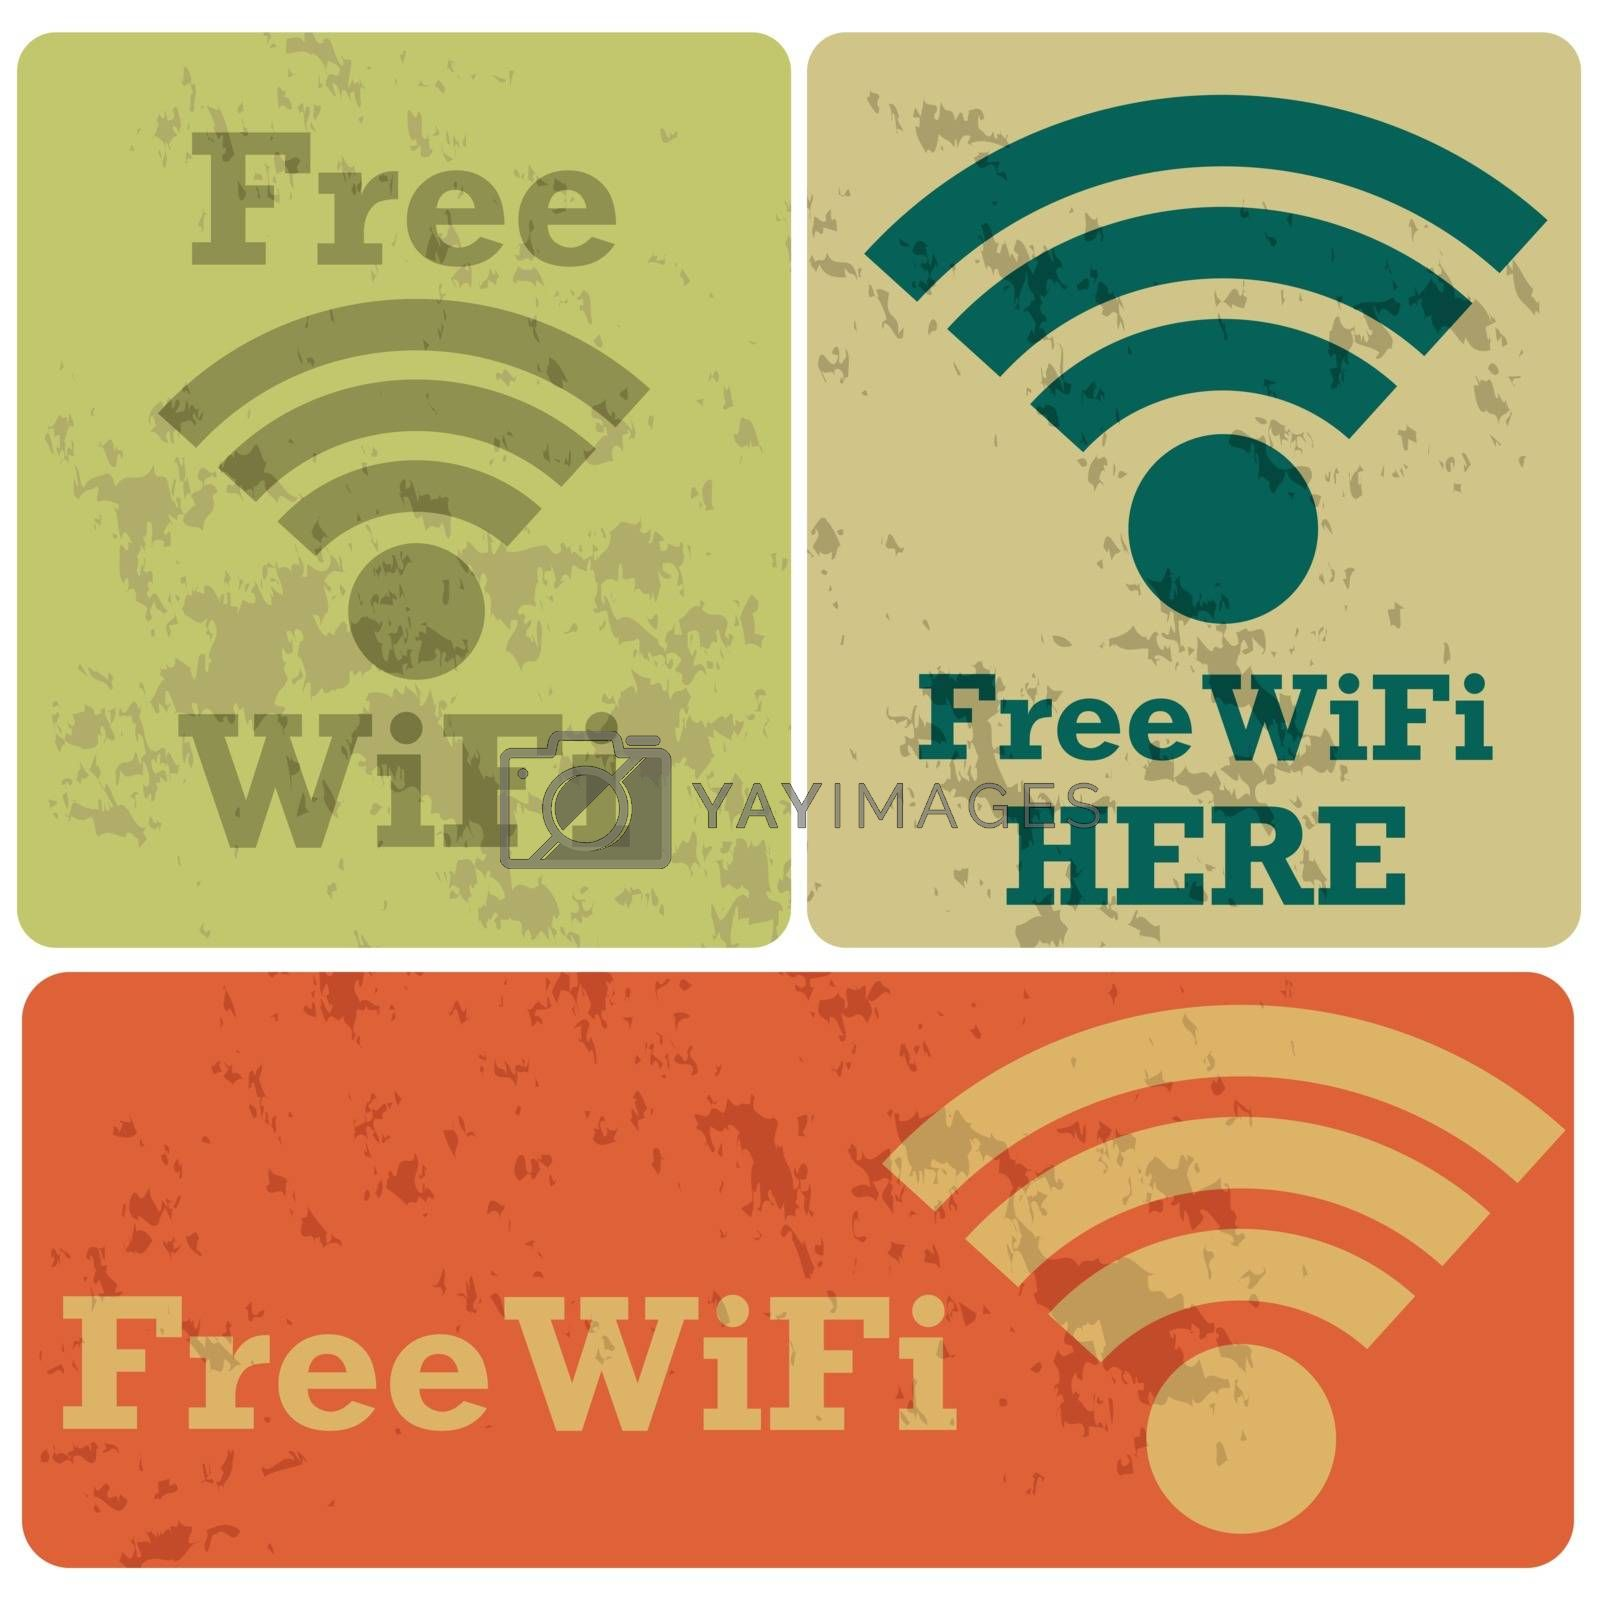 Cartoon illustration showing stickers with the message Free WiFi